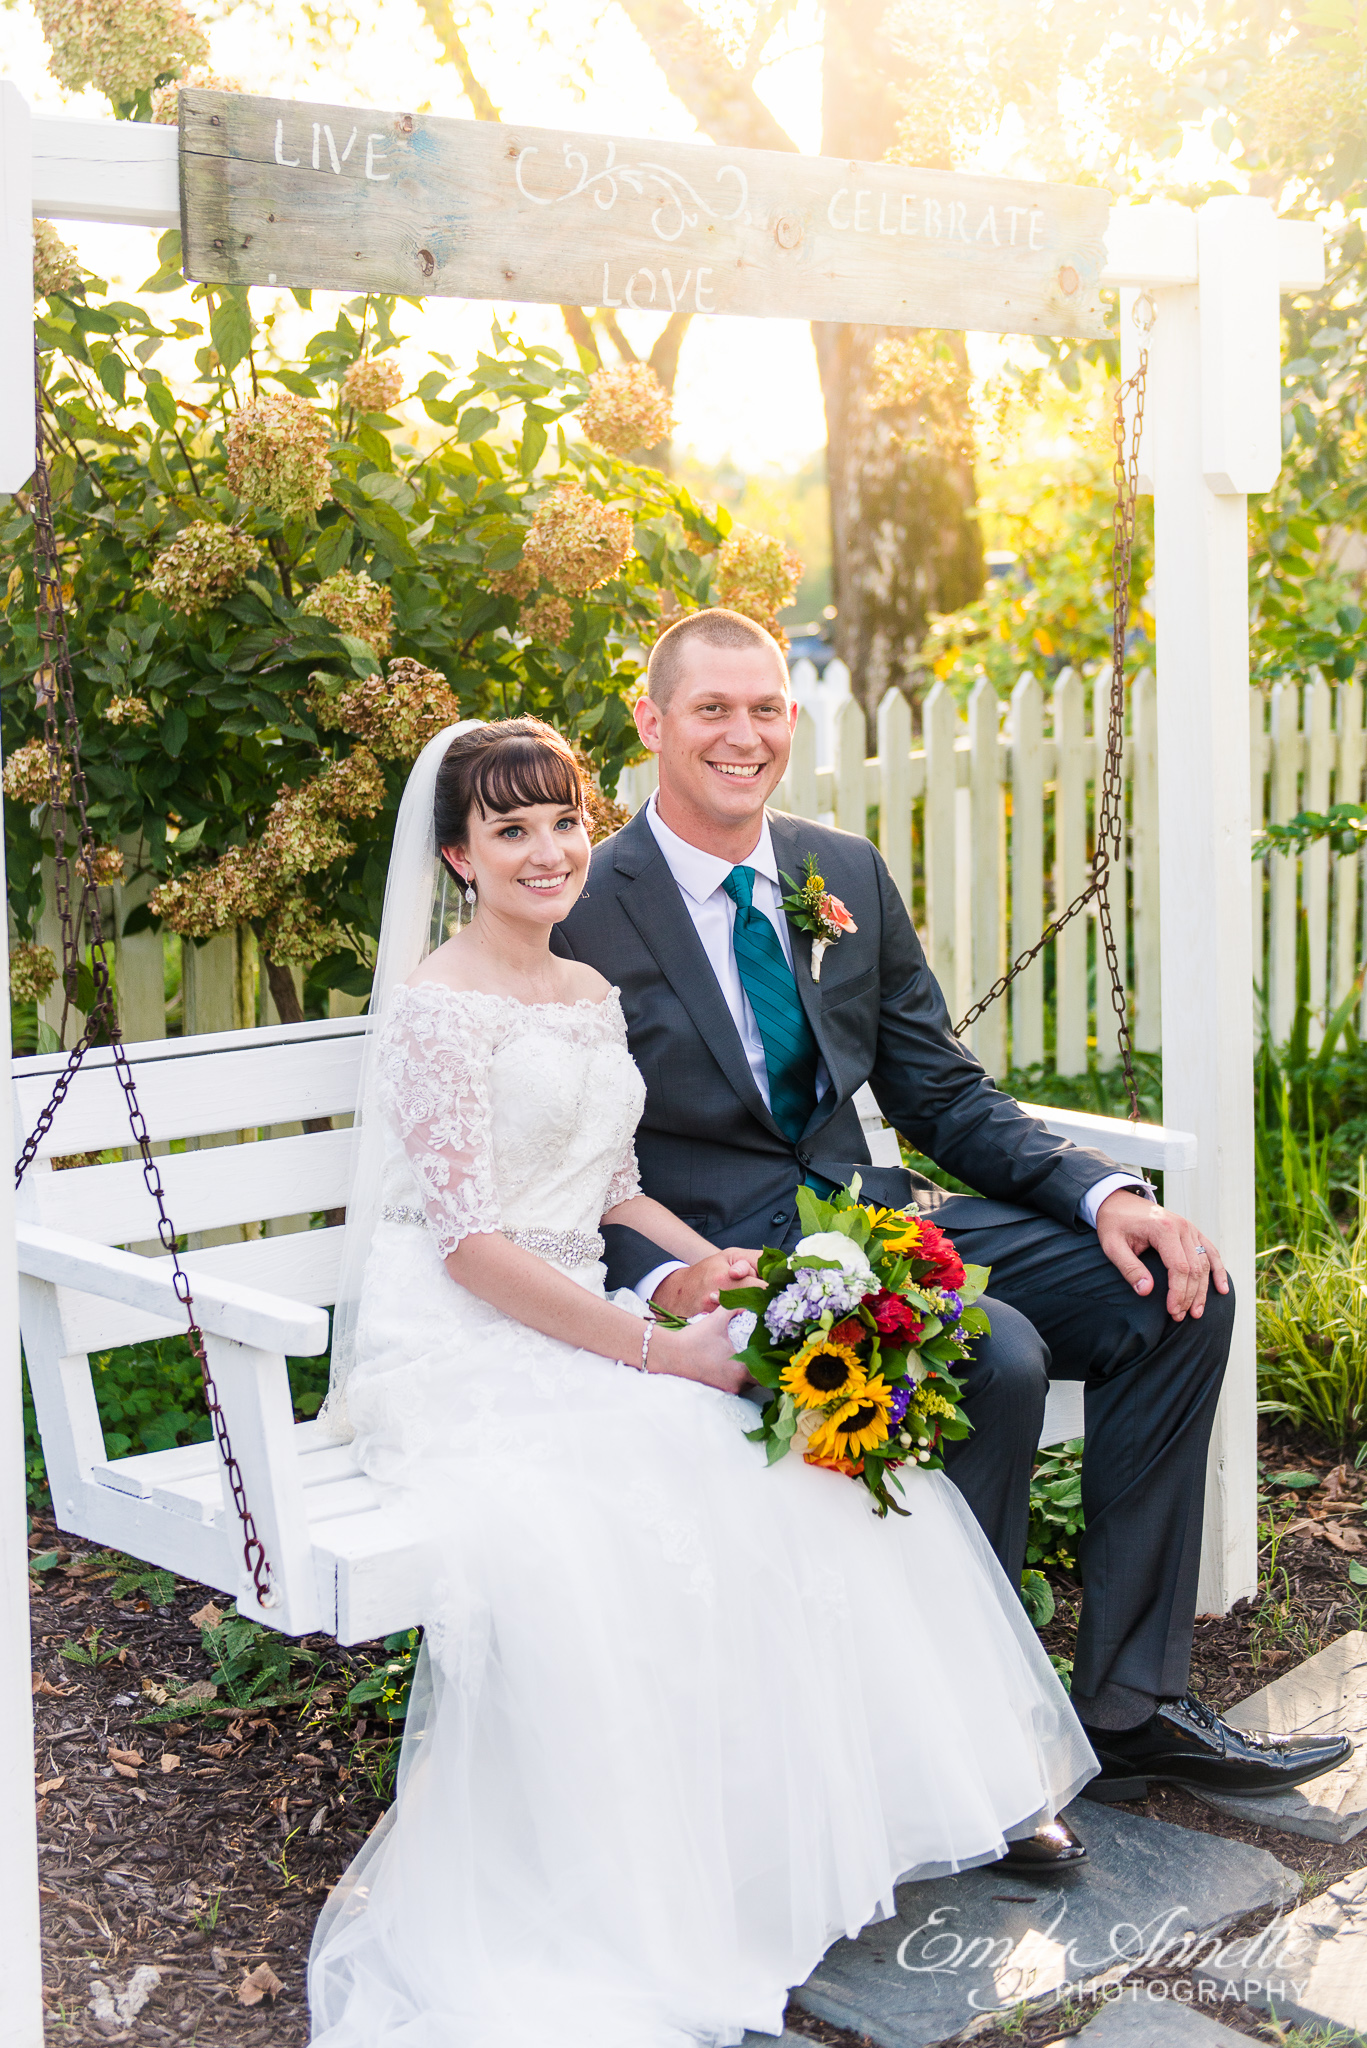 A bride and groom smile at the camera while sitting together on a porch swing during their country wedding at Amber Grove near Richmond, Virginia